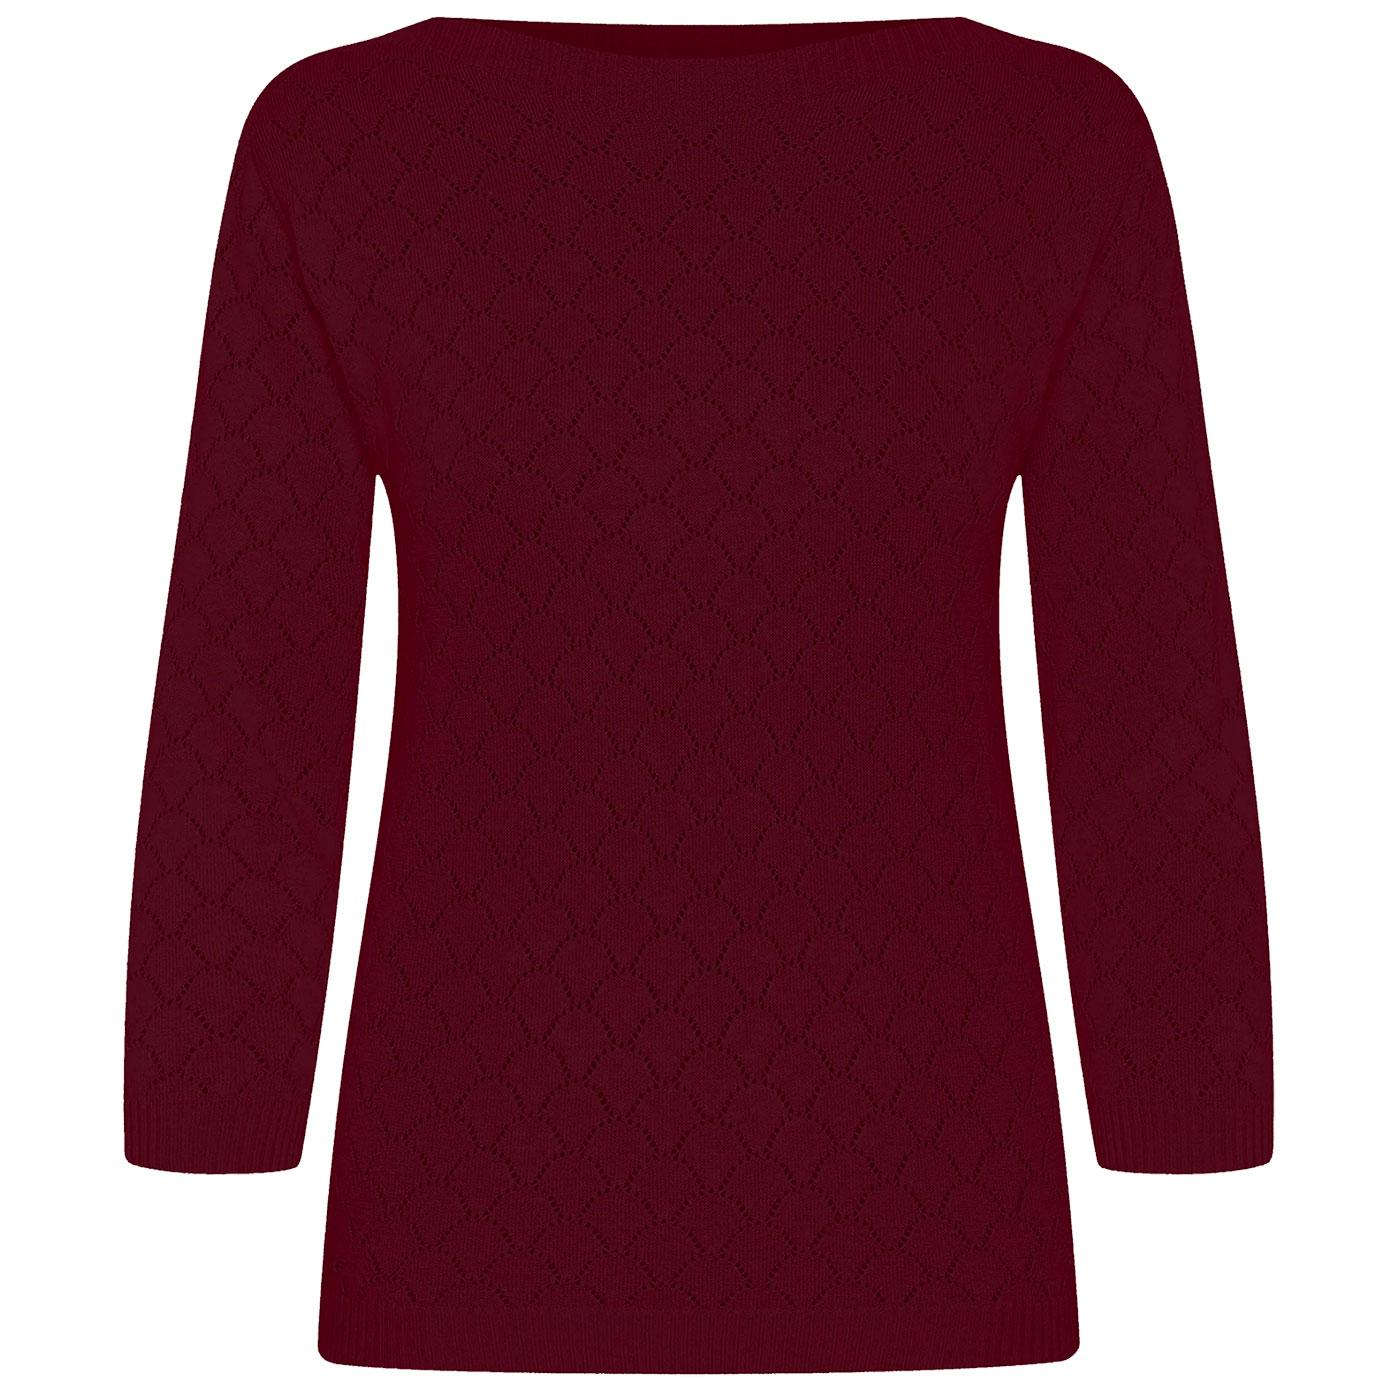 Staying Up MADEMOISELLE YEYE Retro 60s Knit Top W